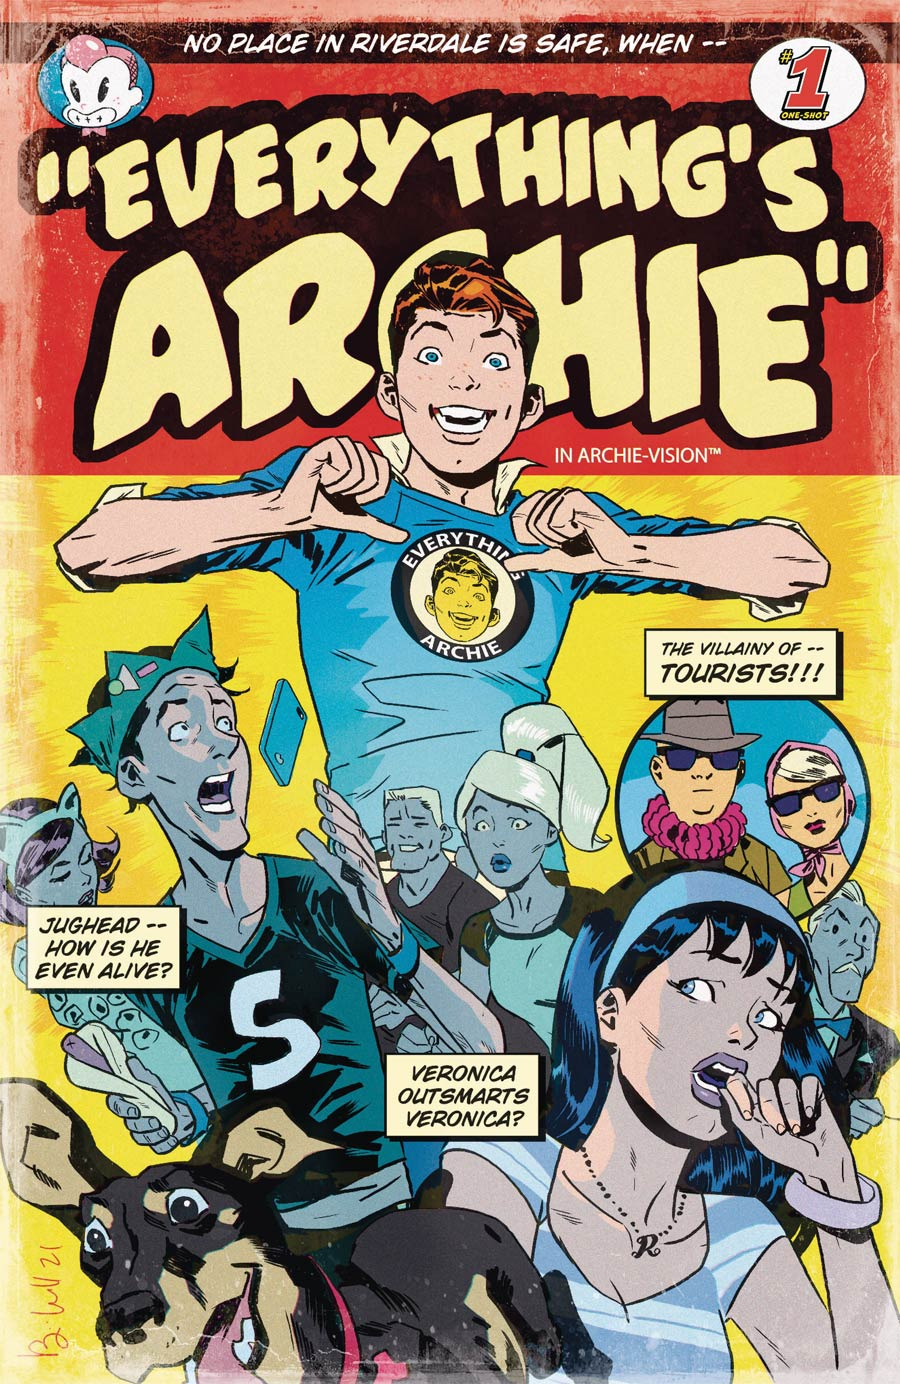 Archie 80th Anniversary #1 (One Shot) Everythings Archie Cover B Variant Ben Caldwell Cover